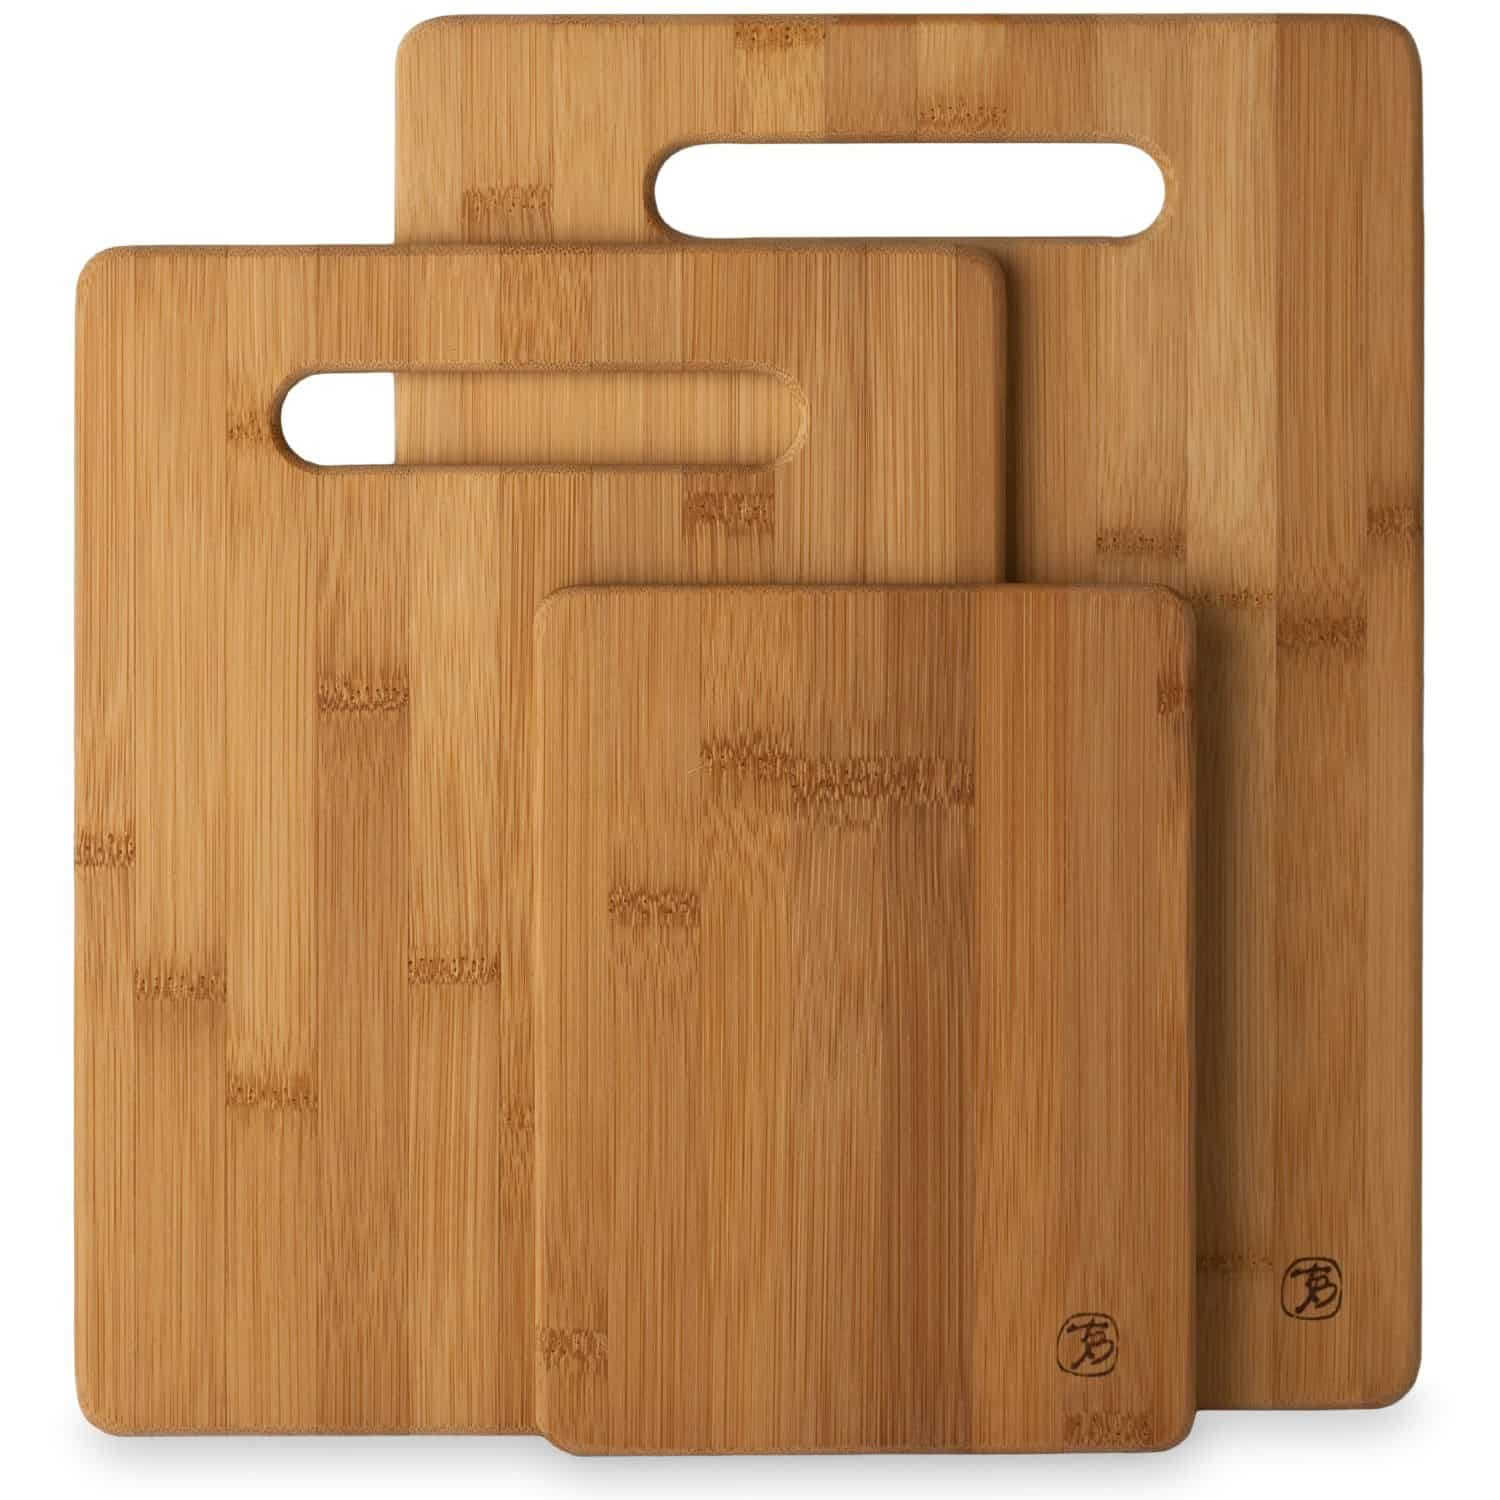 Totally Bamboo 3 Piece Bamboo Cutting Board Review 1